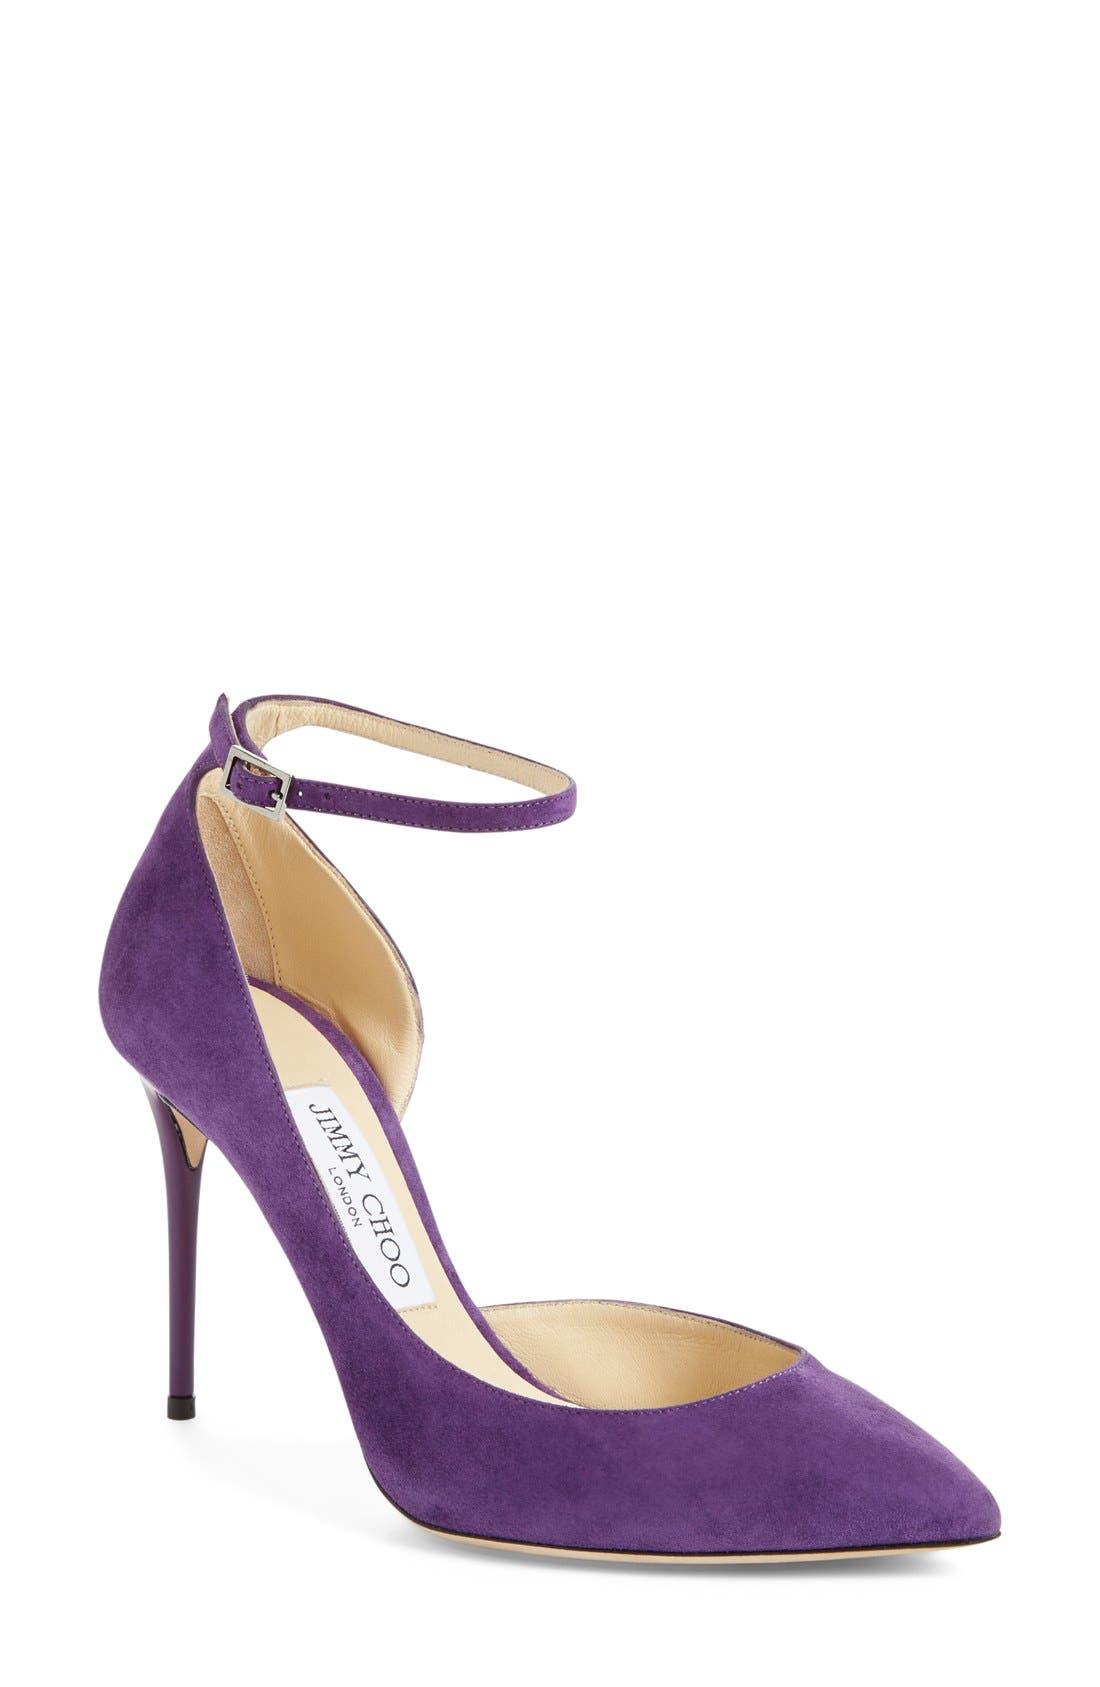 Main Image - Jimmy Choo 'Lucy' Half d'Orsay Pointy Toe Pump (Women)